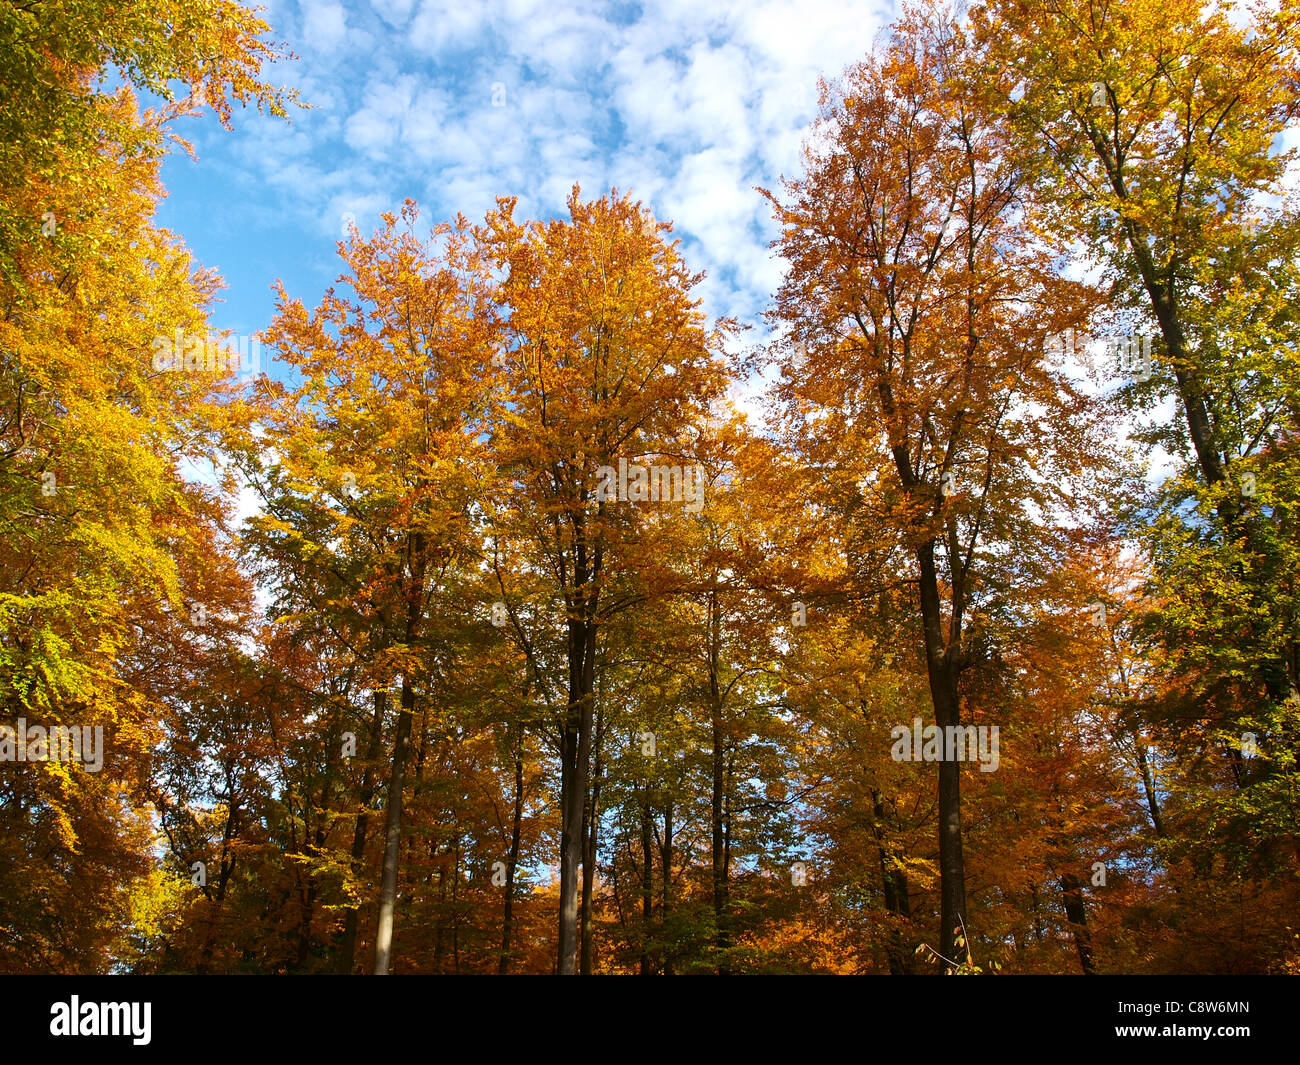 Trees in the Grünewald in Luxembourg, with yellow and orange leaves changing color. - Stock Image